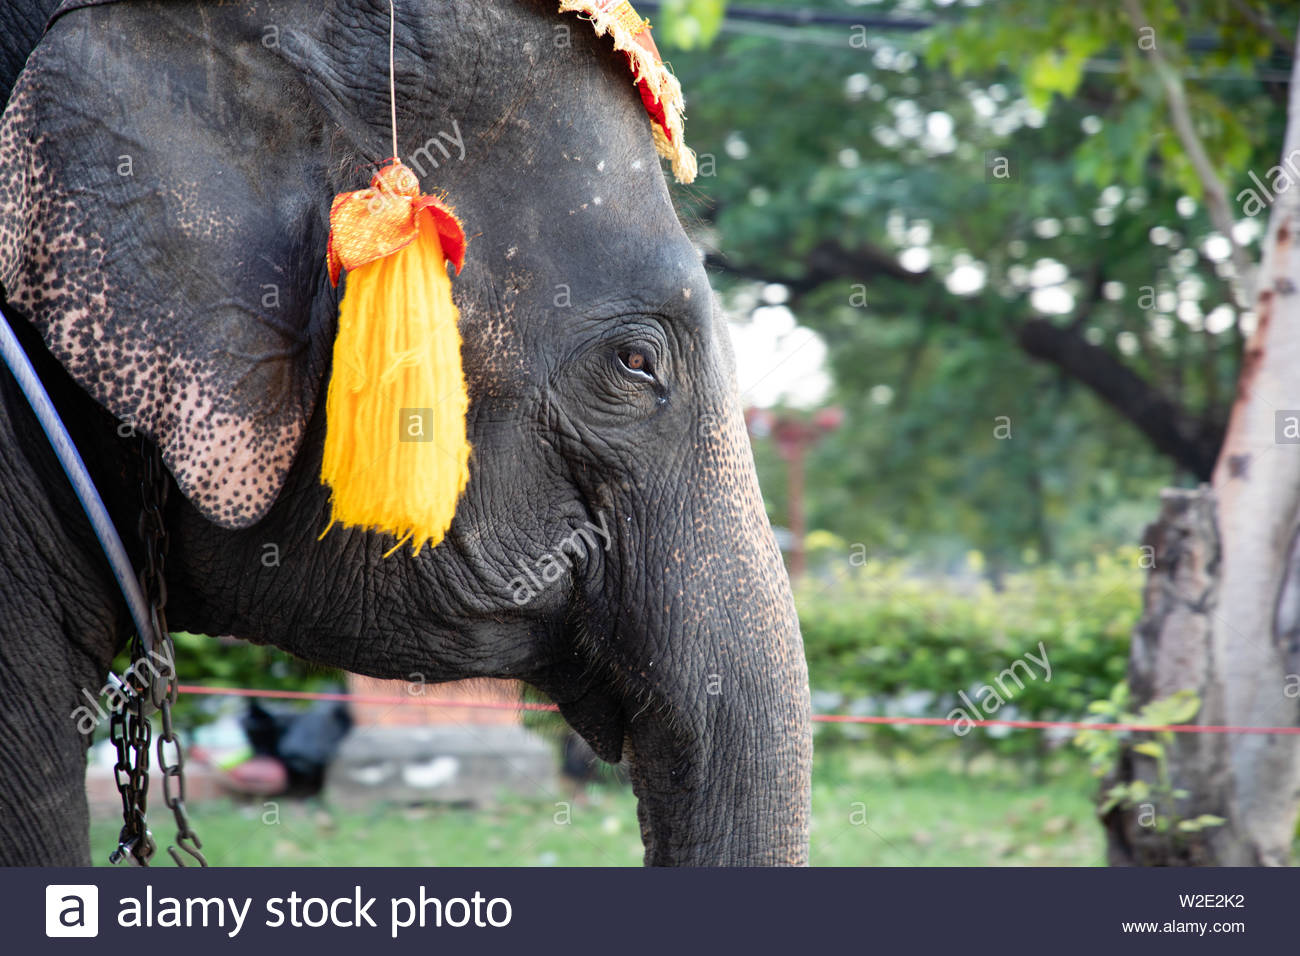 Elephant head shot with chains used for transportation - Stock Image